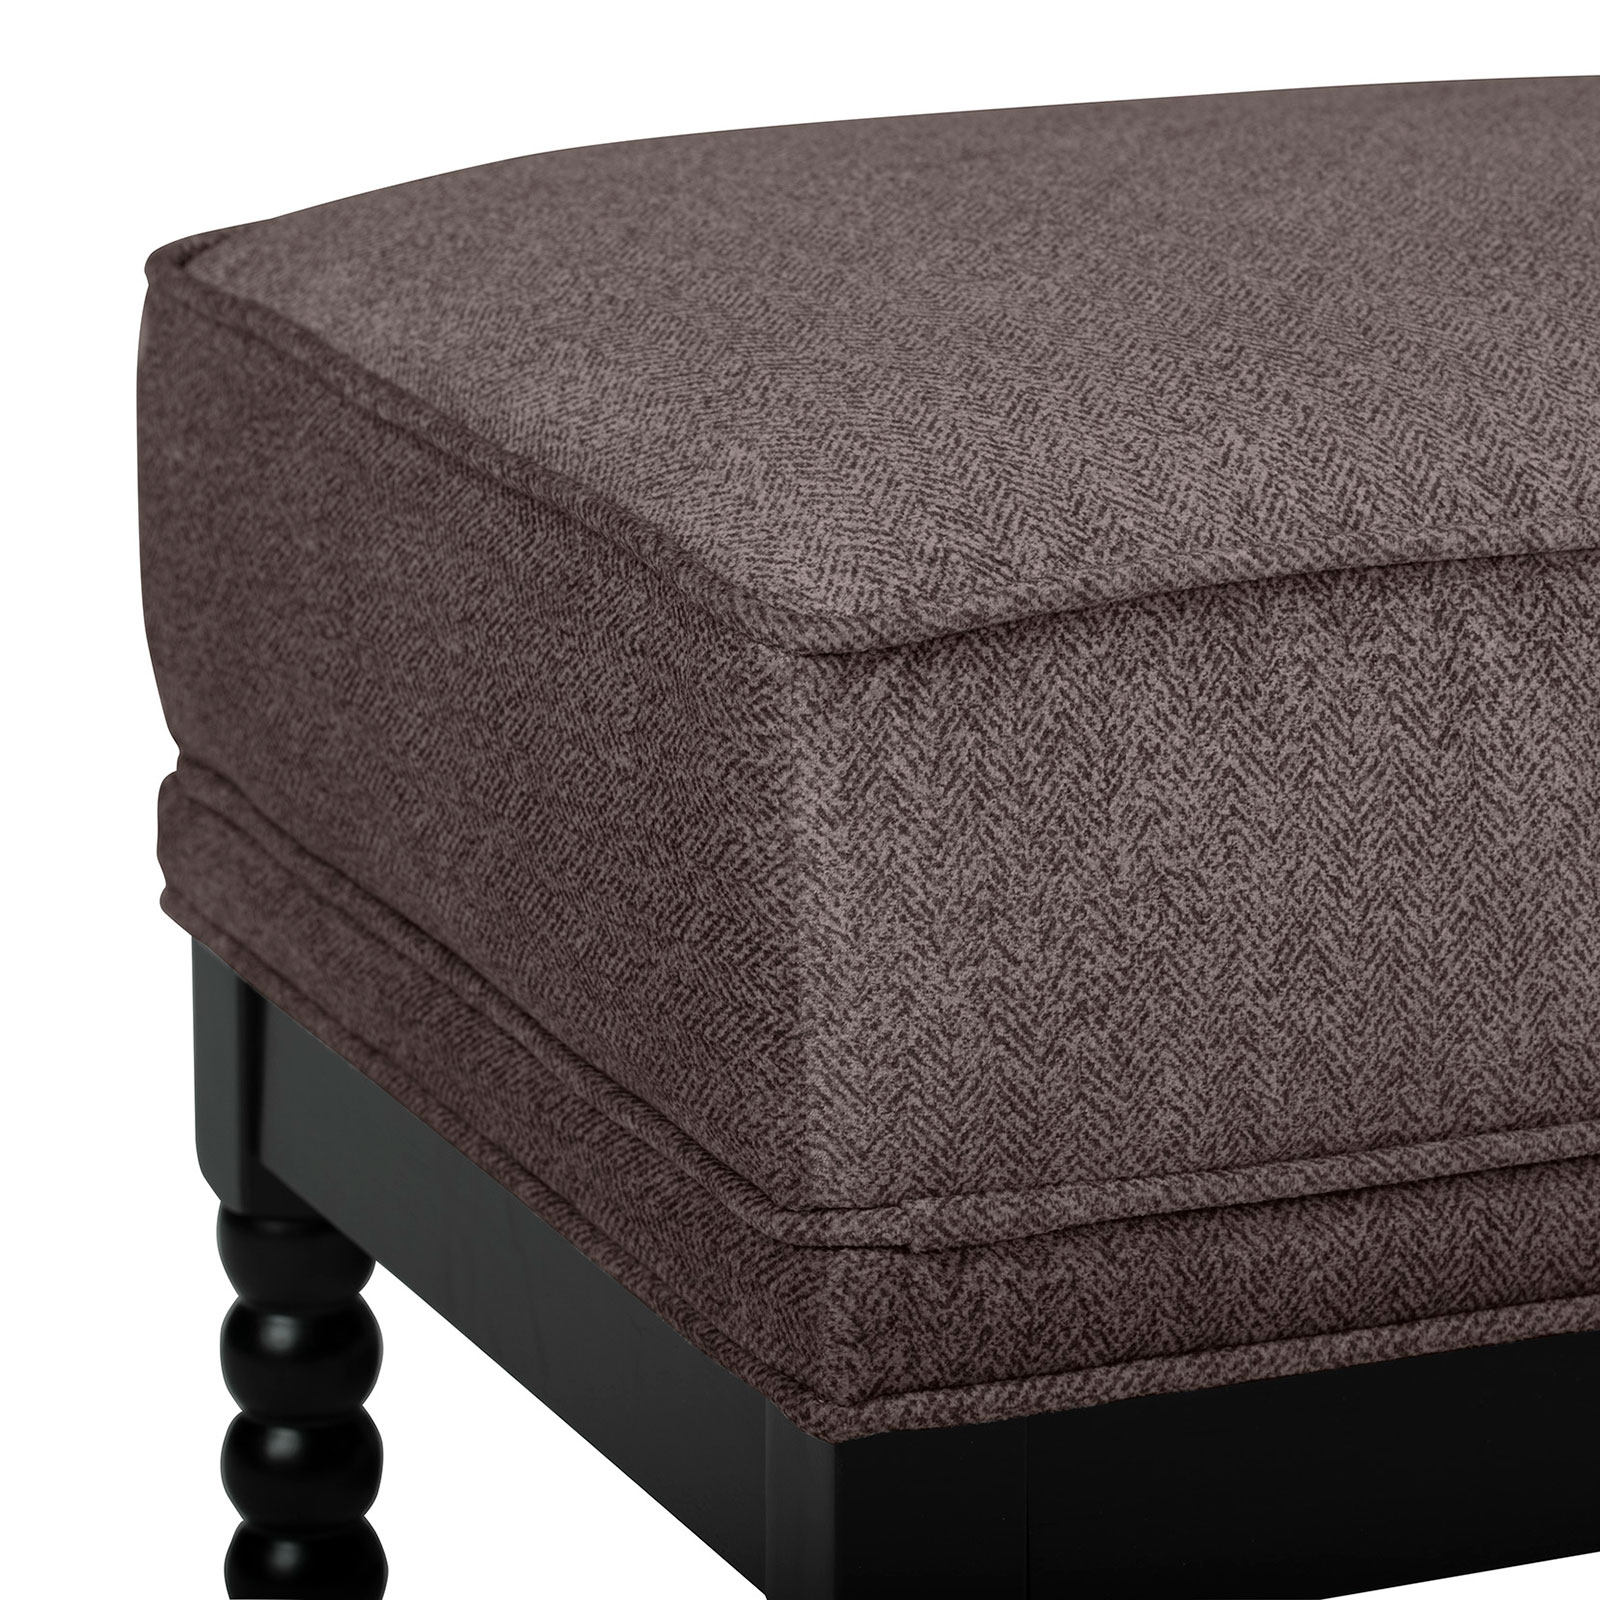 72038-Colonnade-Spindle-Ottoman-detail1